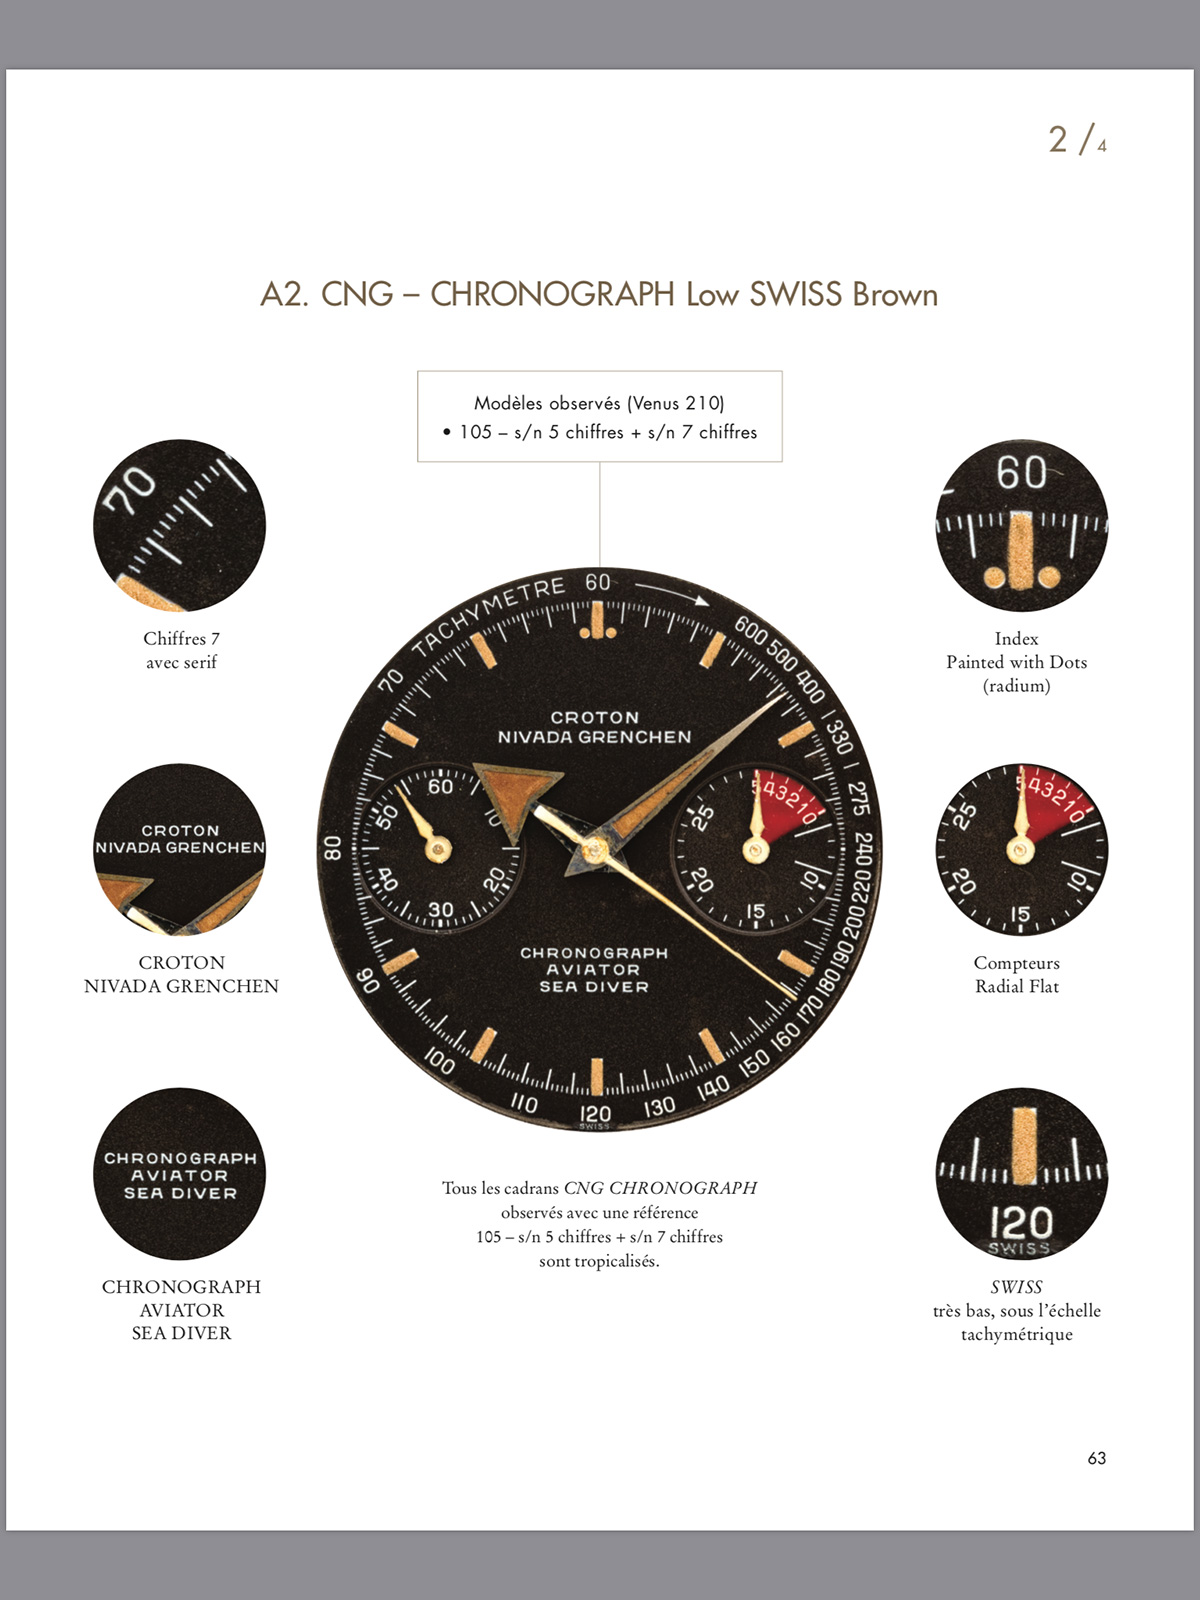 chronomaster-only-aviator-sea-diver-dial-and-hands